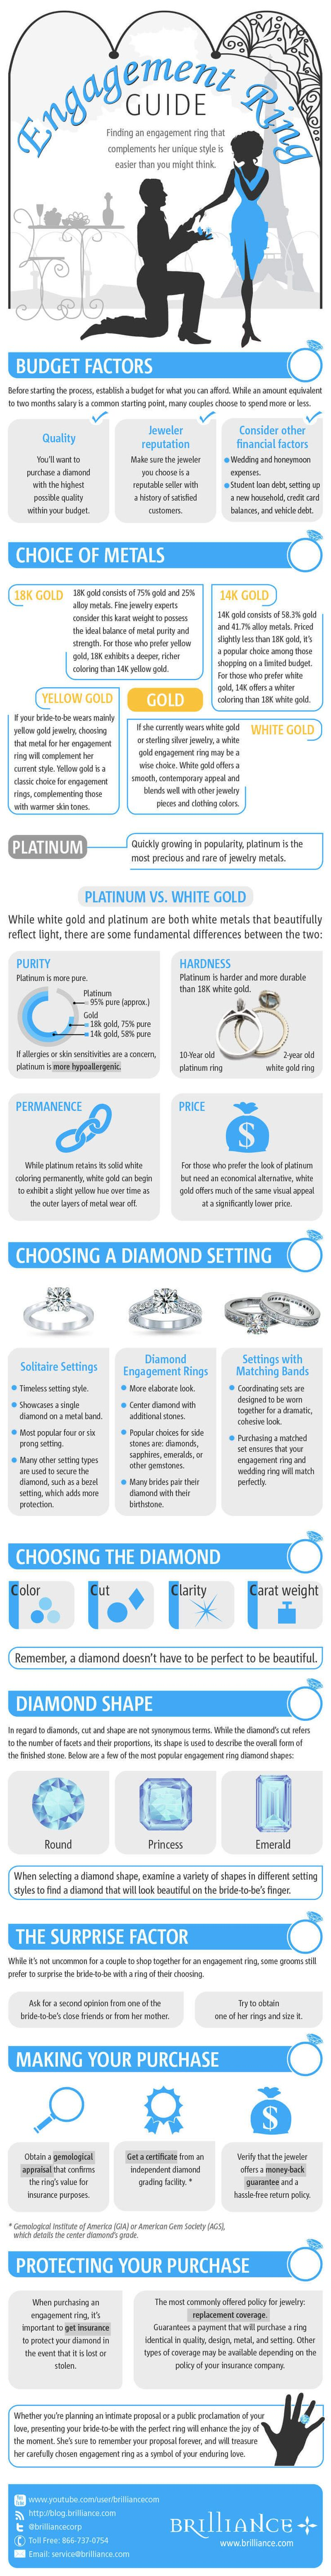 57 best Engagement Rings images on Pinterest